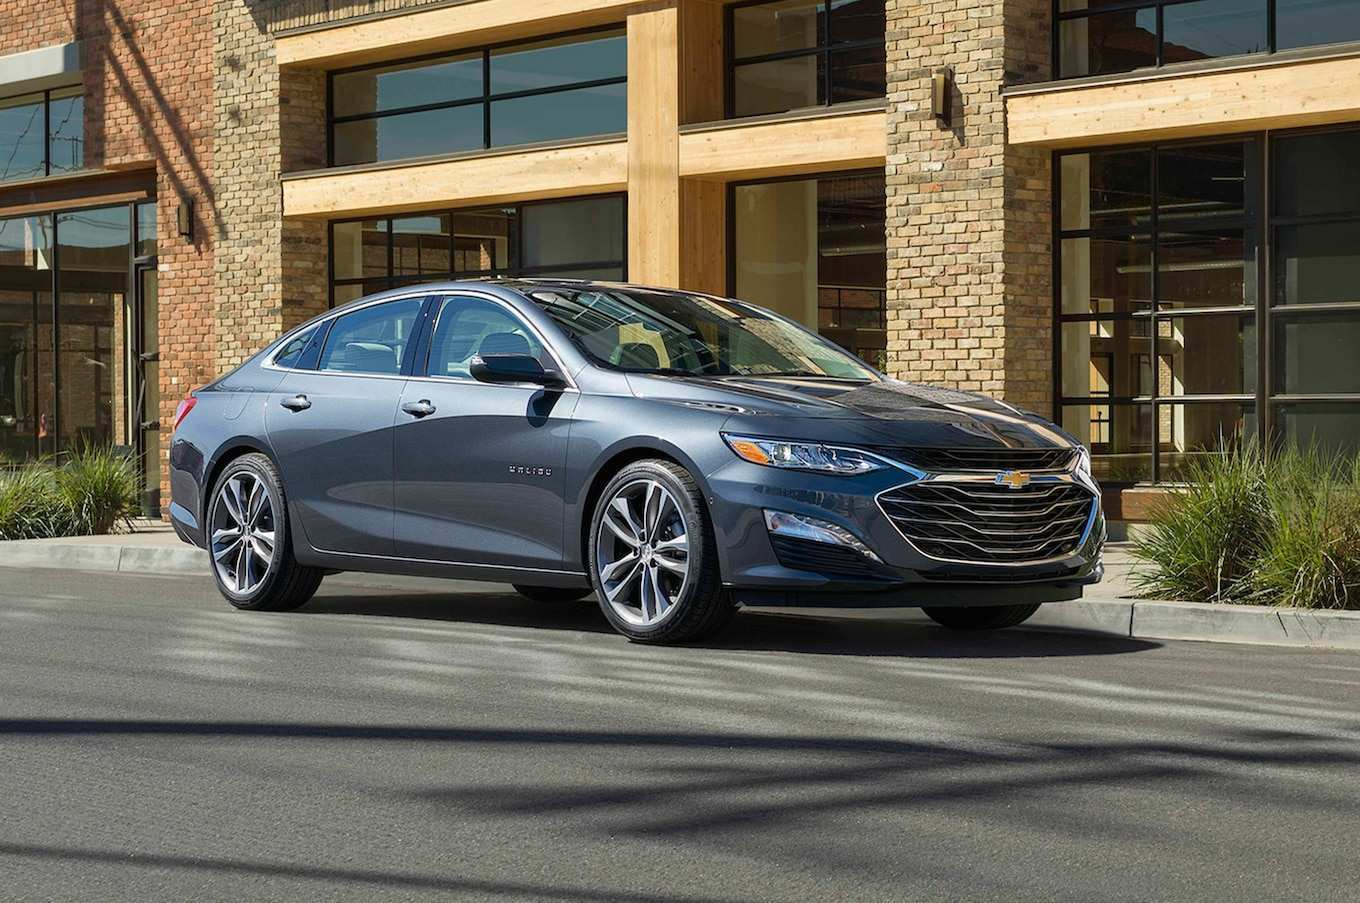 65 A 2019 Chevy Malibu Reviews